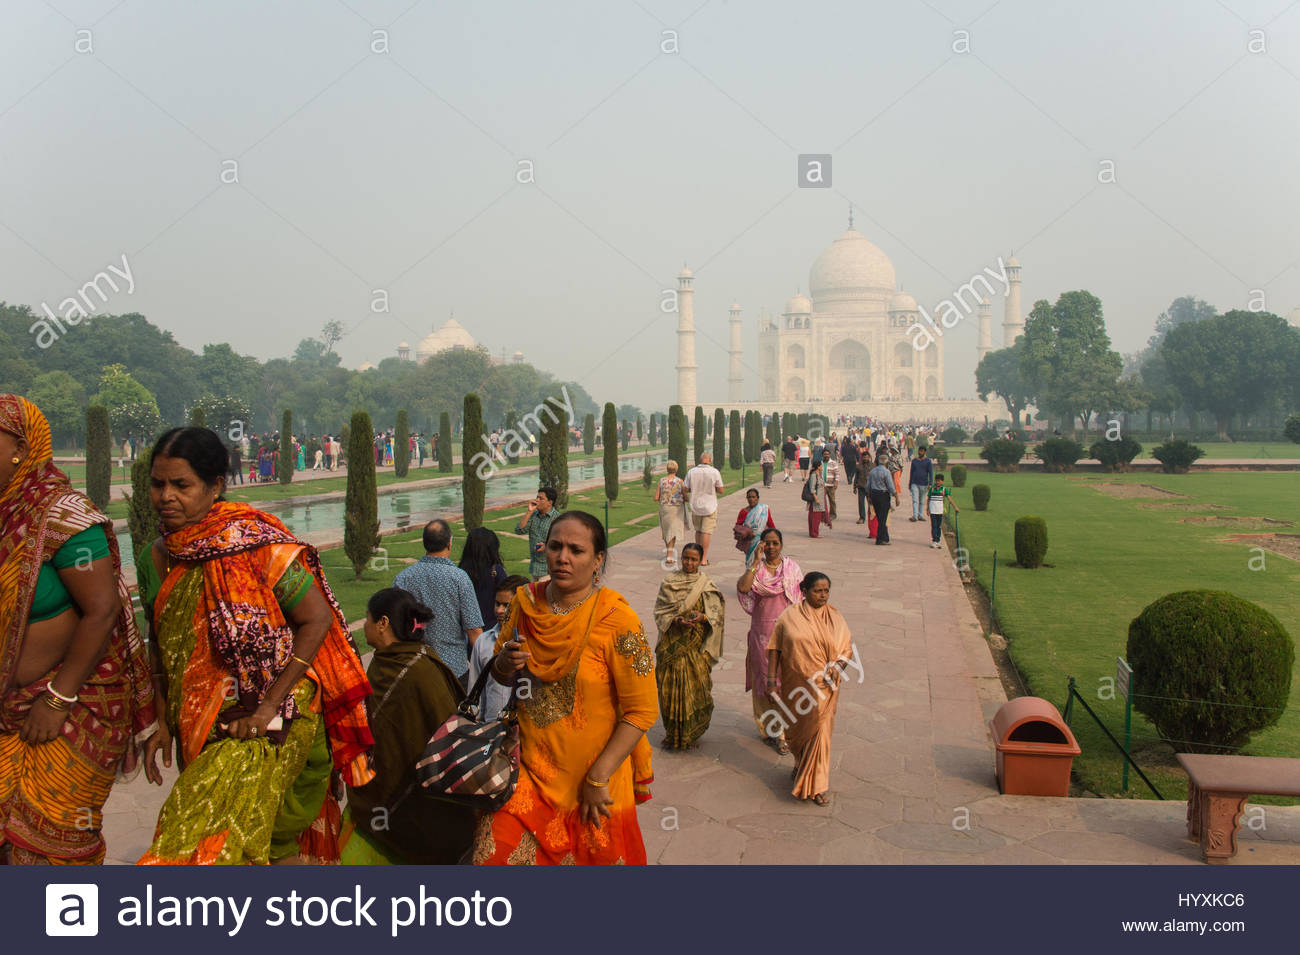 Tourists visit the Taj Mahal in Agra, Uttar Pradesh, India. - Stock Image